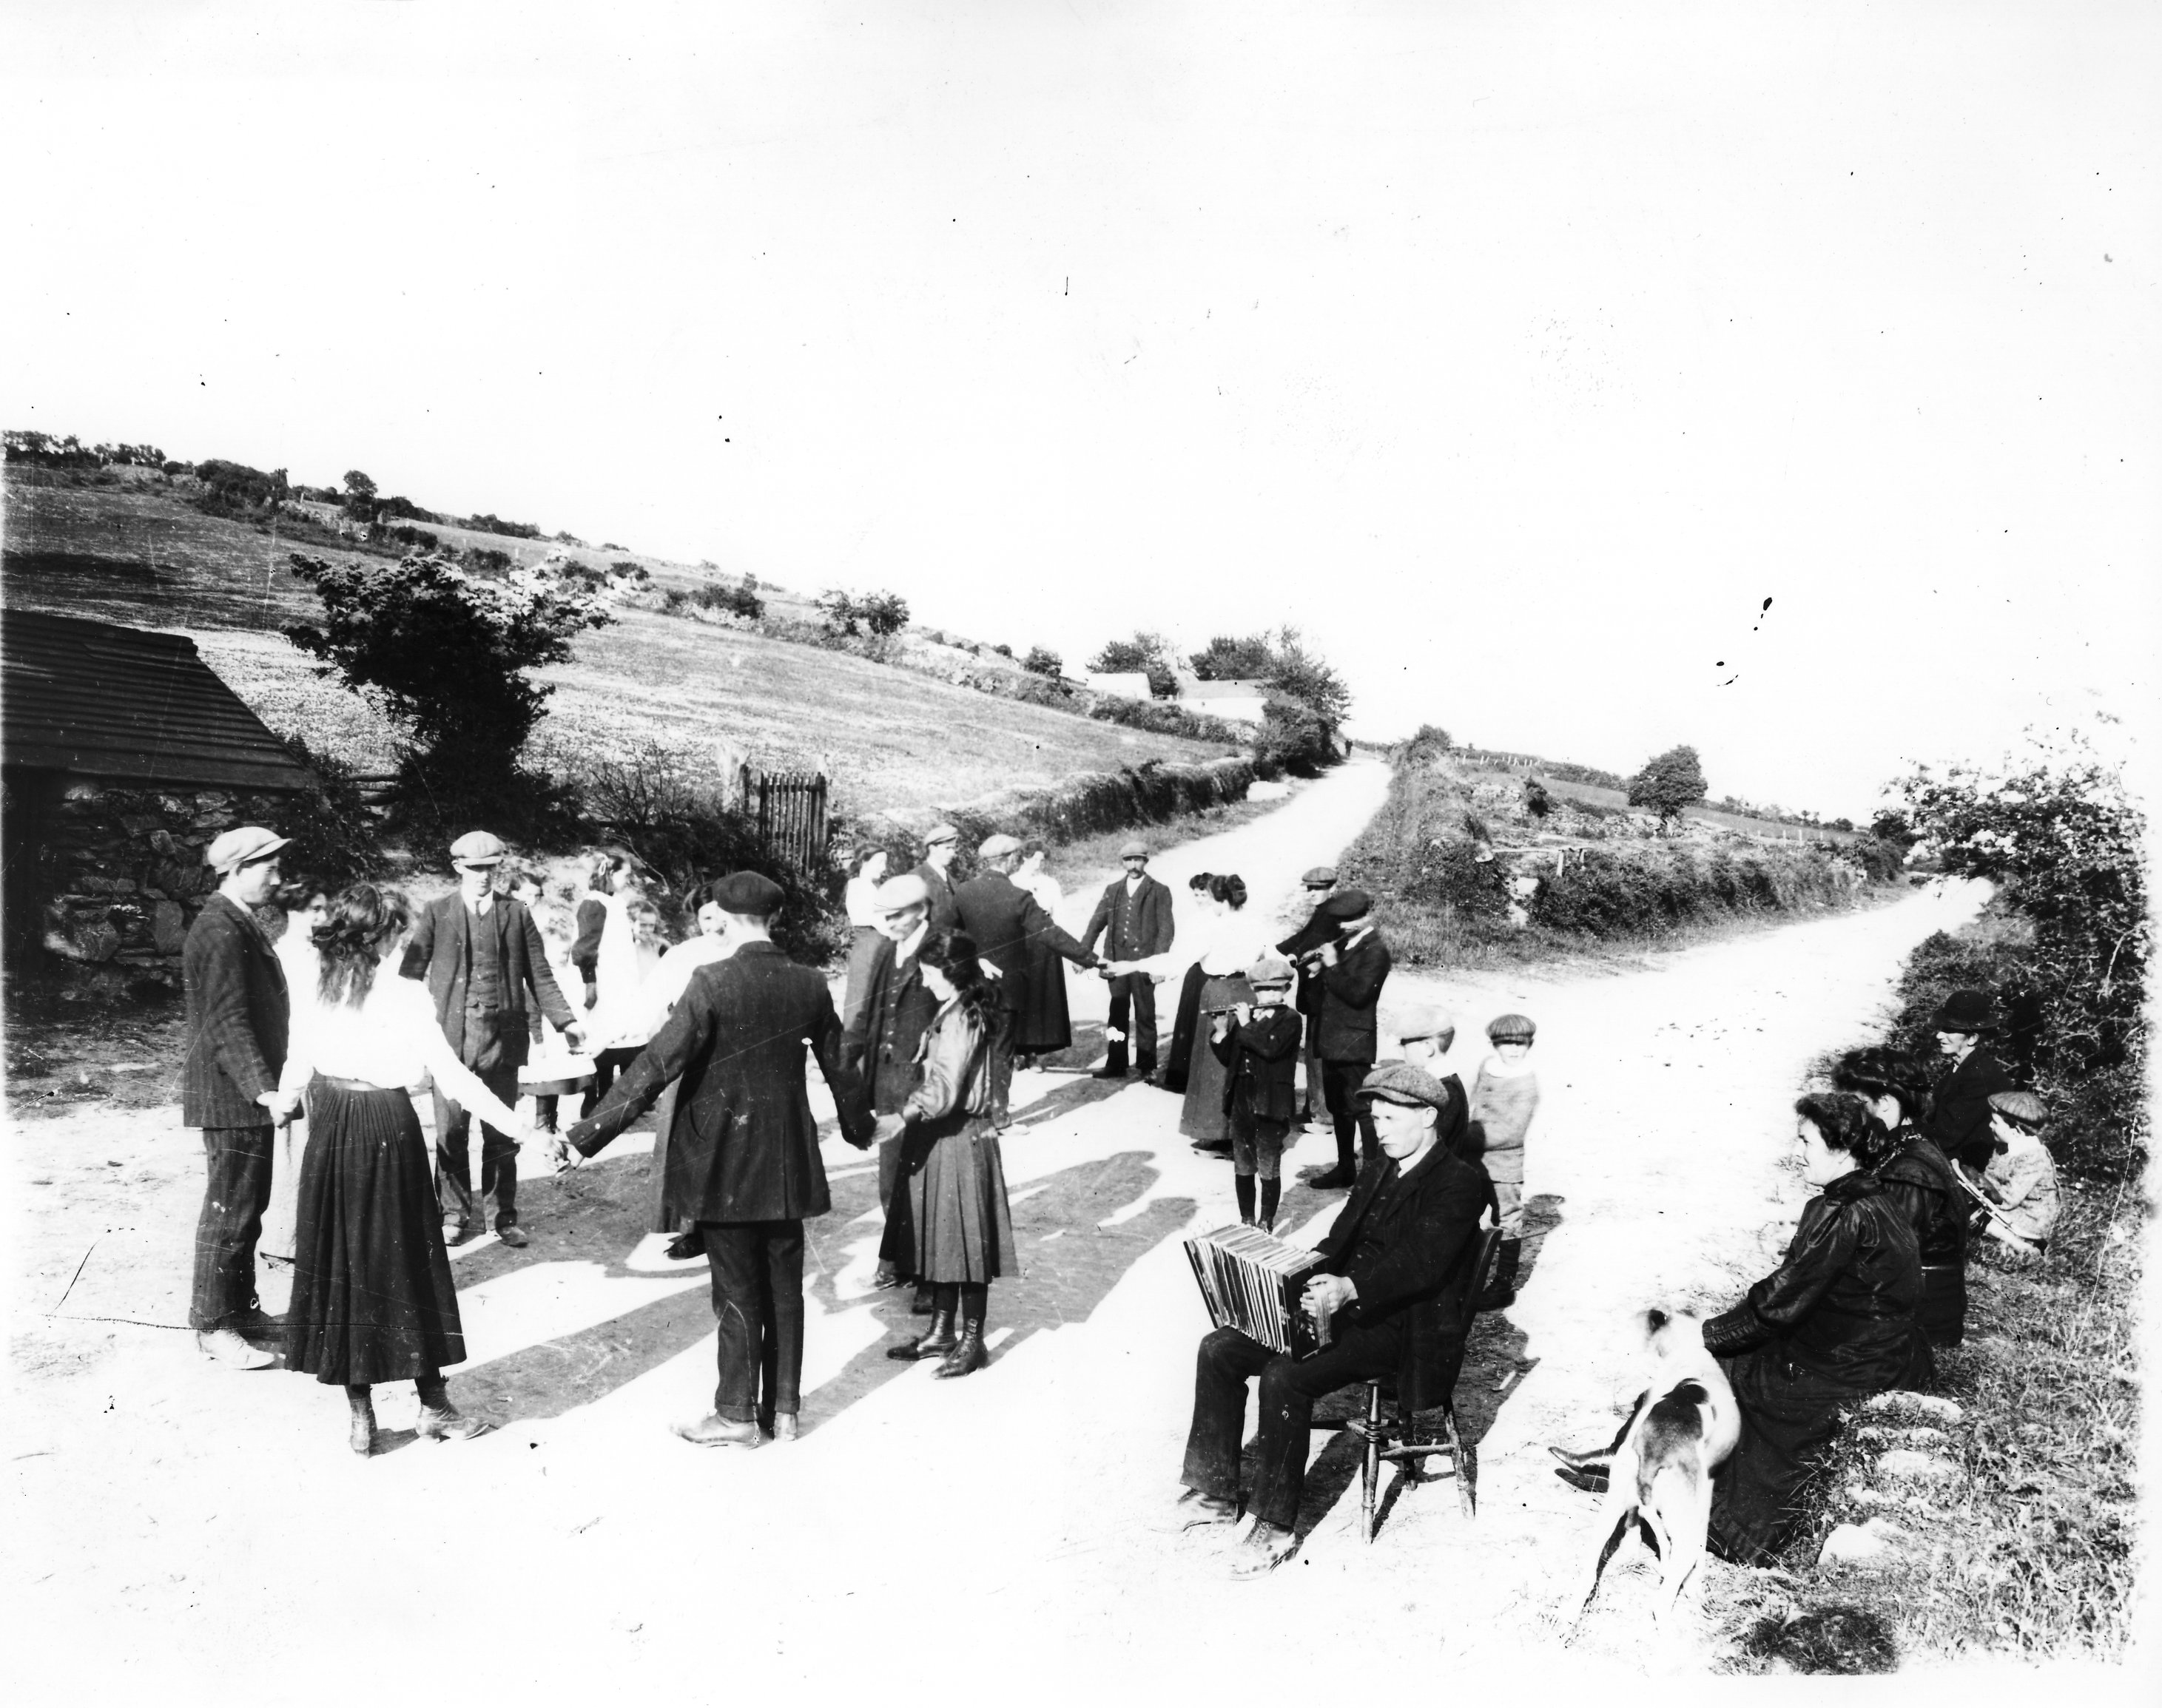 Locate this photo in the NUI Galway library archives at  http://archives.library.nuigalway.ie/joeburke/images/DancingCrossroads1891.jpg